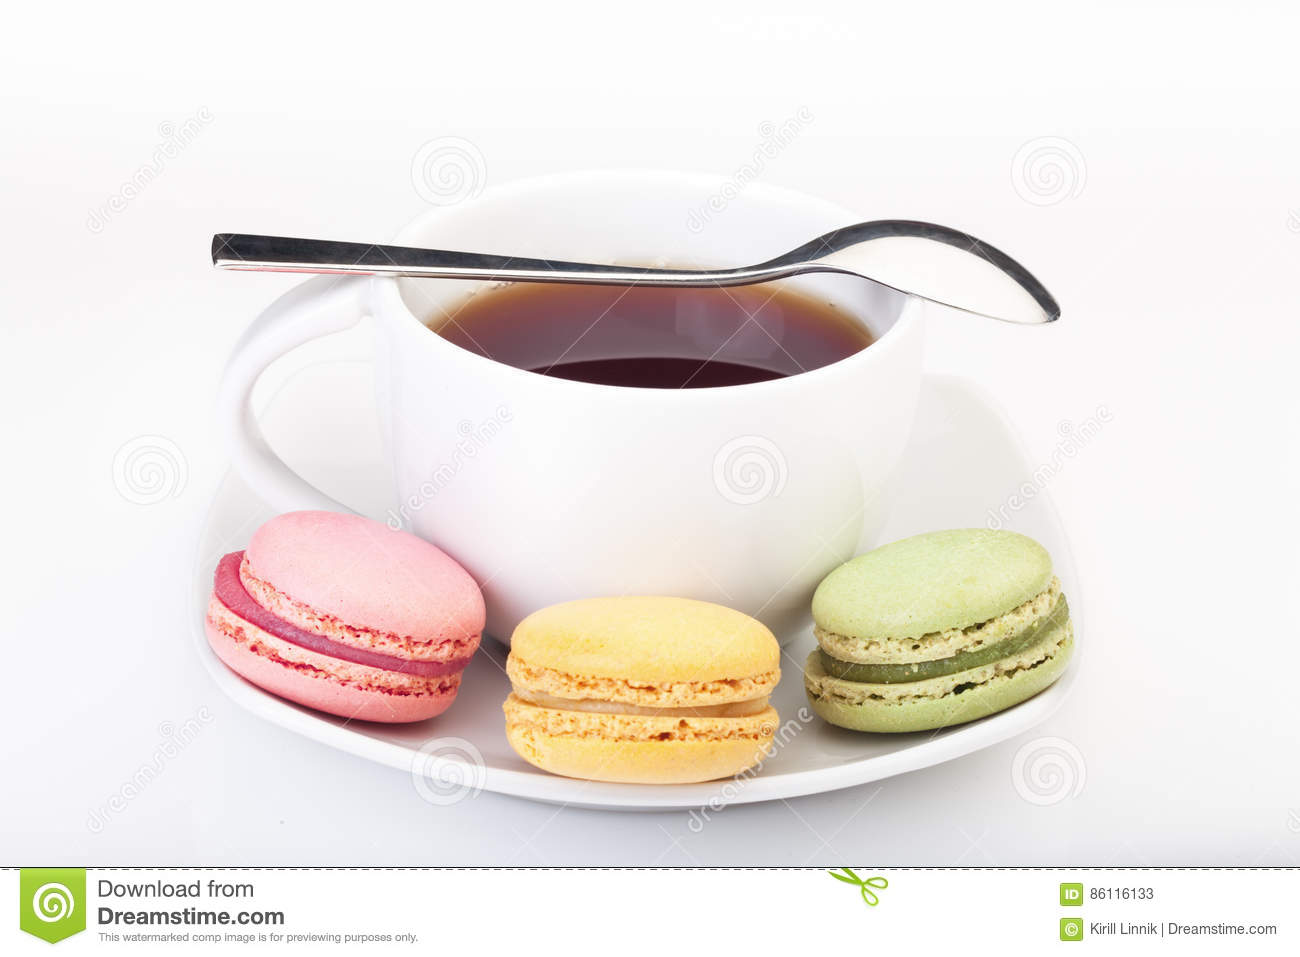 Download Minimalism: English Tea And French Macaroons Stock Image - Image of confection, assortment: 86116133